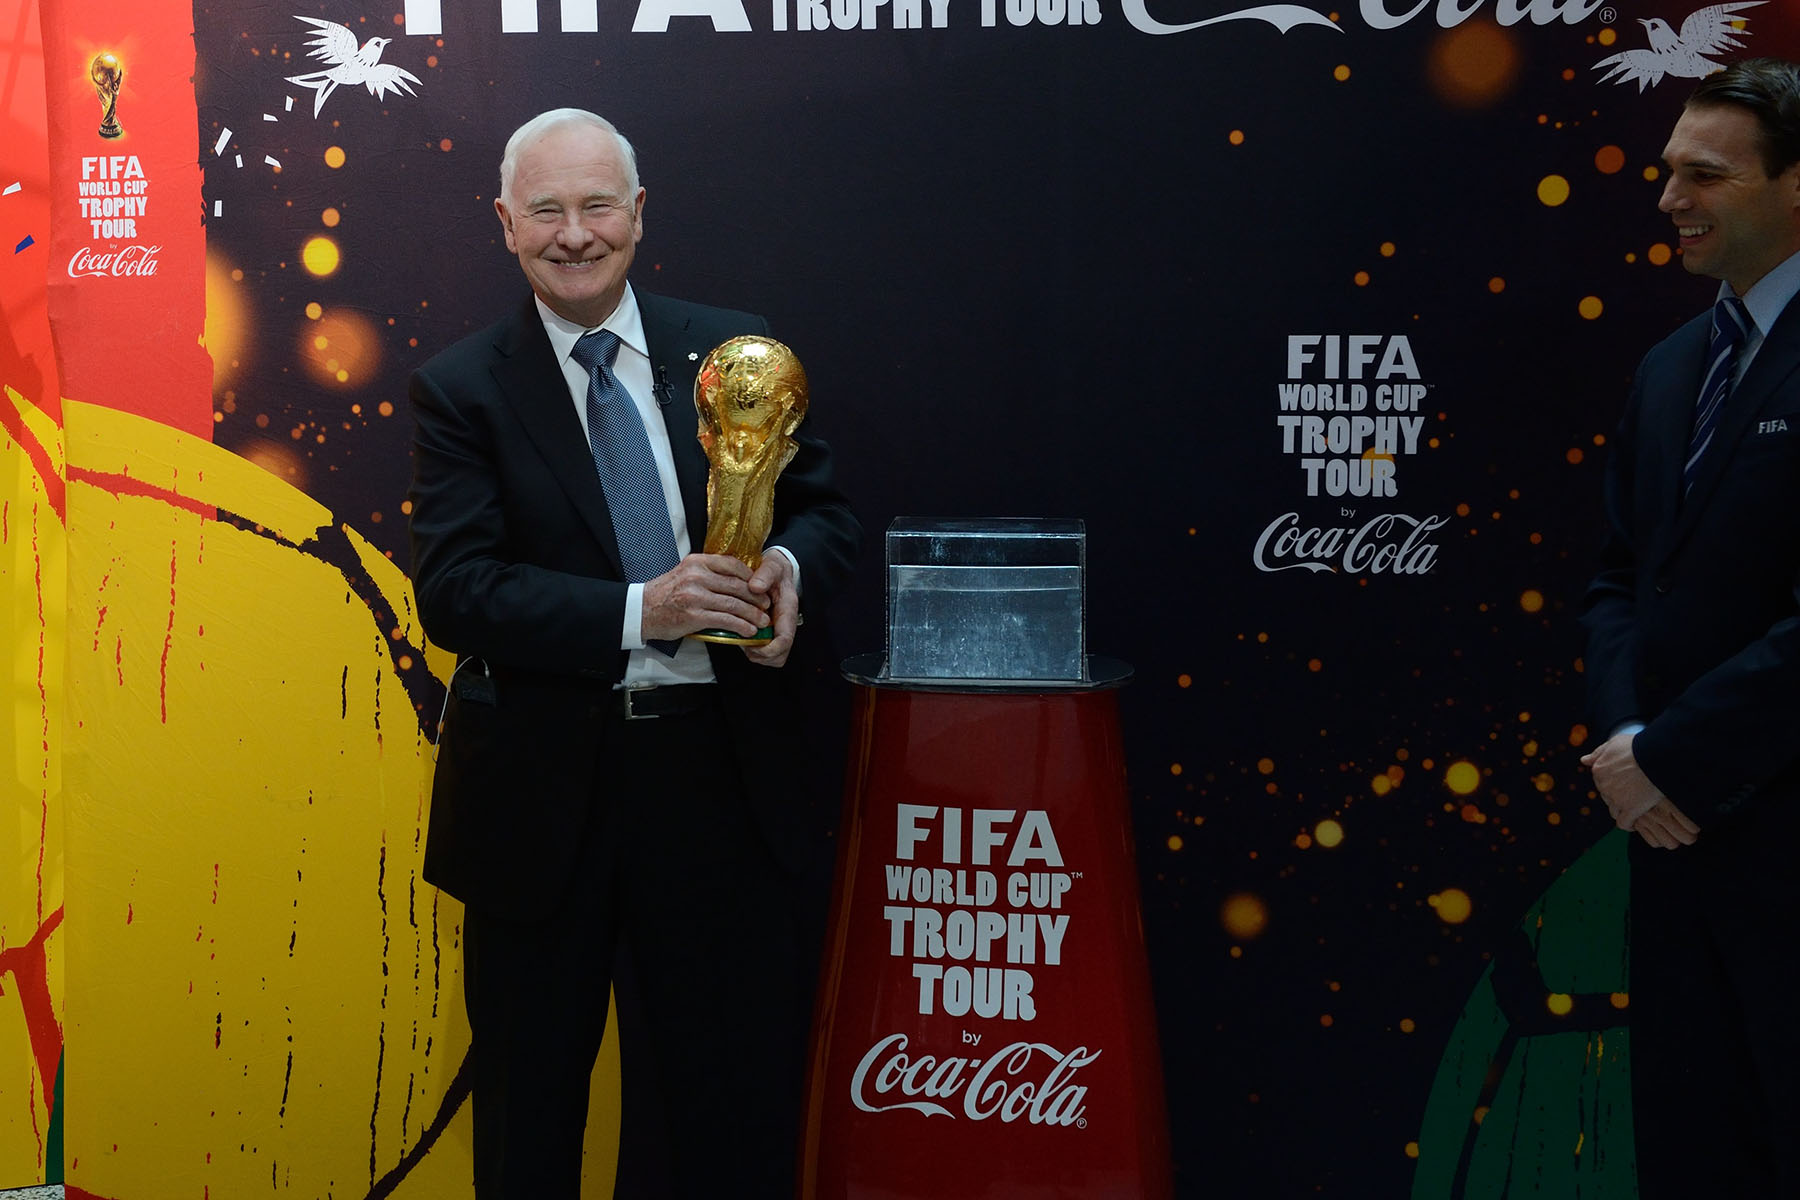 Later that day, the Governor General had the unique opportunity to touch the FIFA World Cup Trophy, during its only Canadian stop on the world tour.